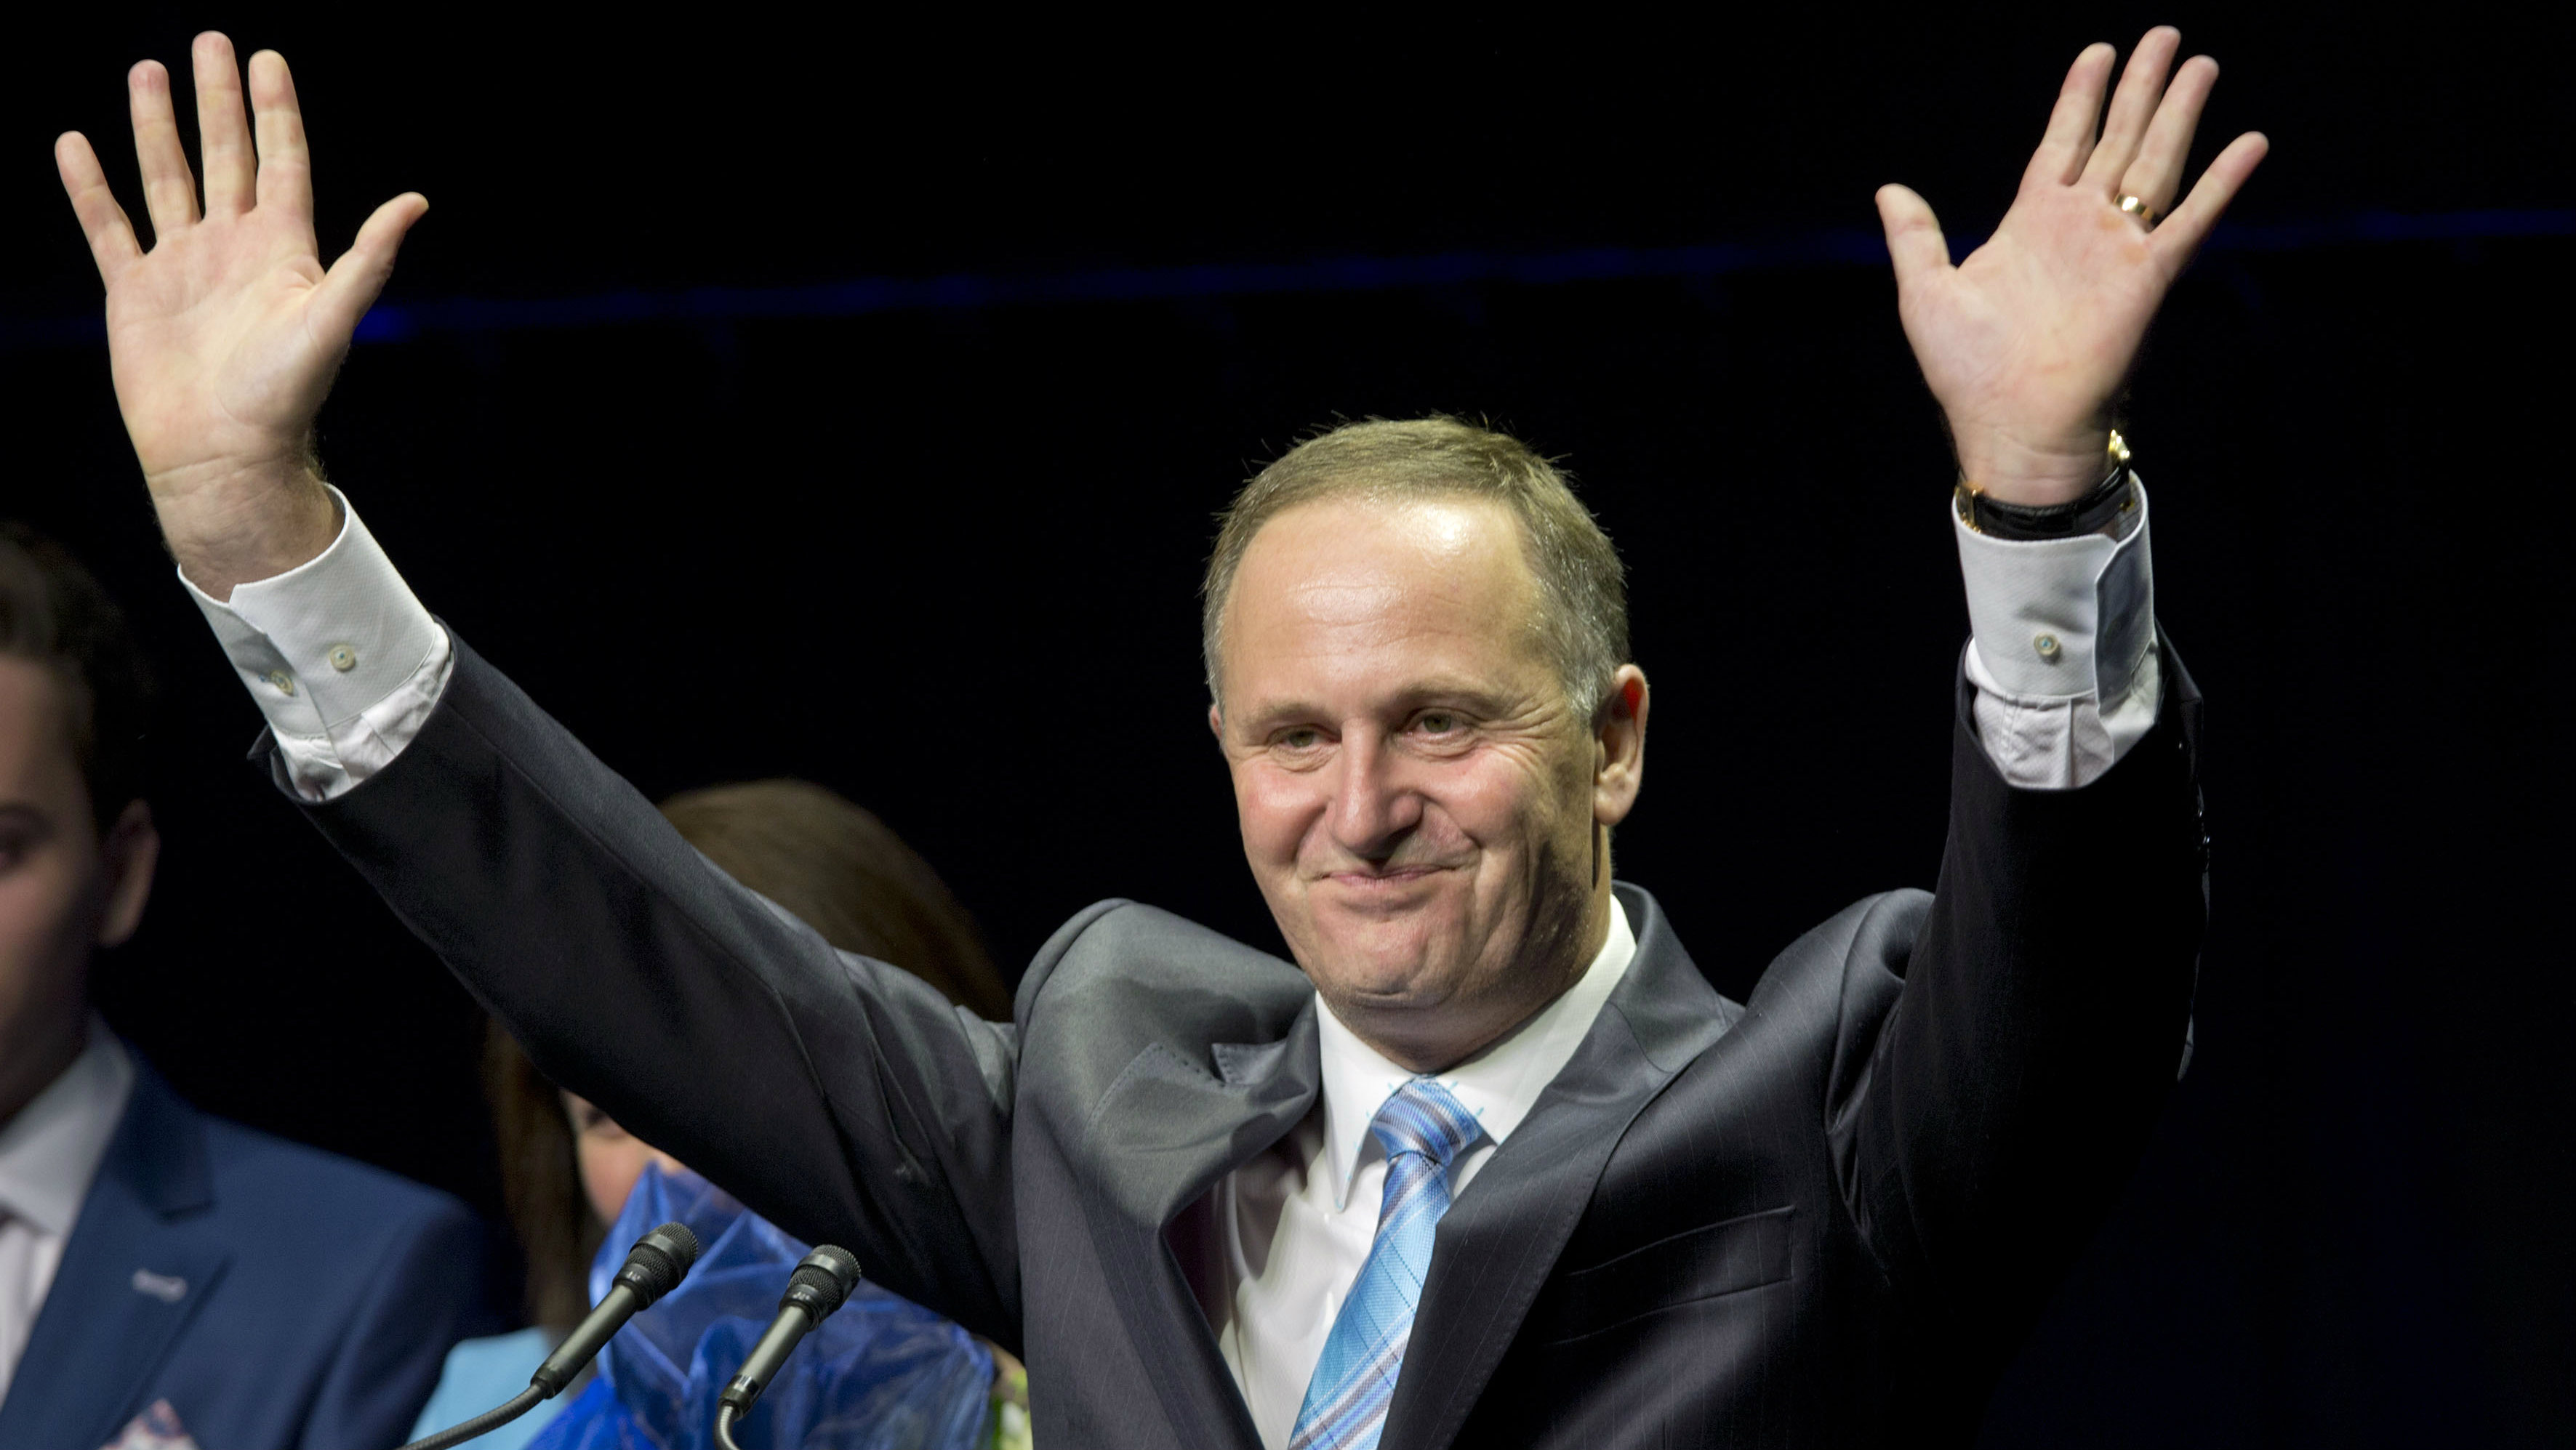 New Zealand Prime Minister John Key waves as he makes a speech after winning the national election in Auckland, New Zealand, Saturday, Sept. 20, 2014. Key won an emphatic victory in New Zealand's general election to return for a third term in office, a result that will be seen as an endorsement of the way Key's National Party has handled the economy. (AP Photo/New Zealand Herald, Mark Mitchell)